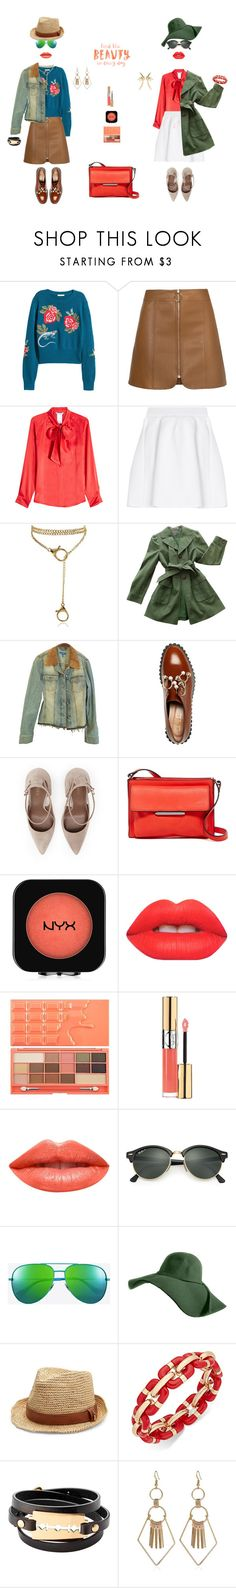 """""""FIND THE BEAUTY IN EVERYDAY"""" by k-hearts-a ❤ liked on Polyvore featuring MaxMara, malo, Ann Taylor, ESCADA, Coliàc Martina Grasselli, French Connection, NYX, Lime Crime, Yves Saint Laurent and Ardency Inn"""